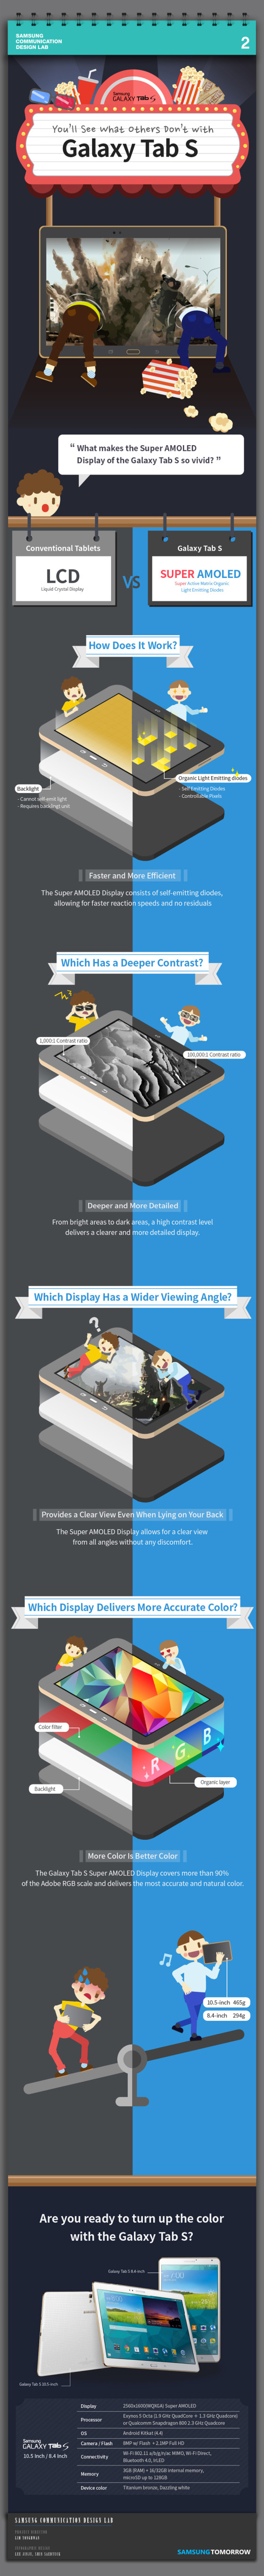 Infographic-Youll-See-What-Others-Dont-with-Galaxy-Tab-S